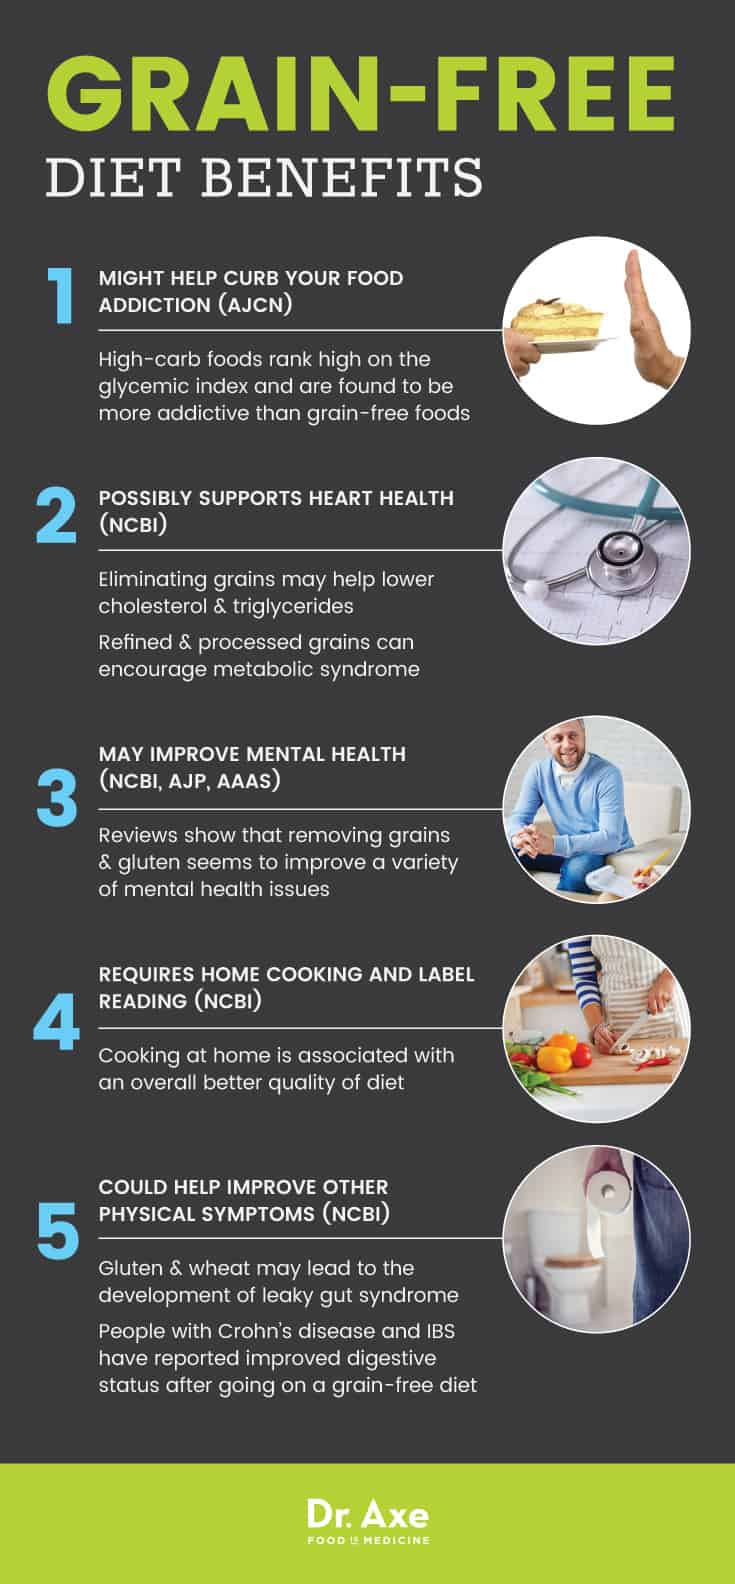 Grain-free diet benefits - Dr. Axe